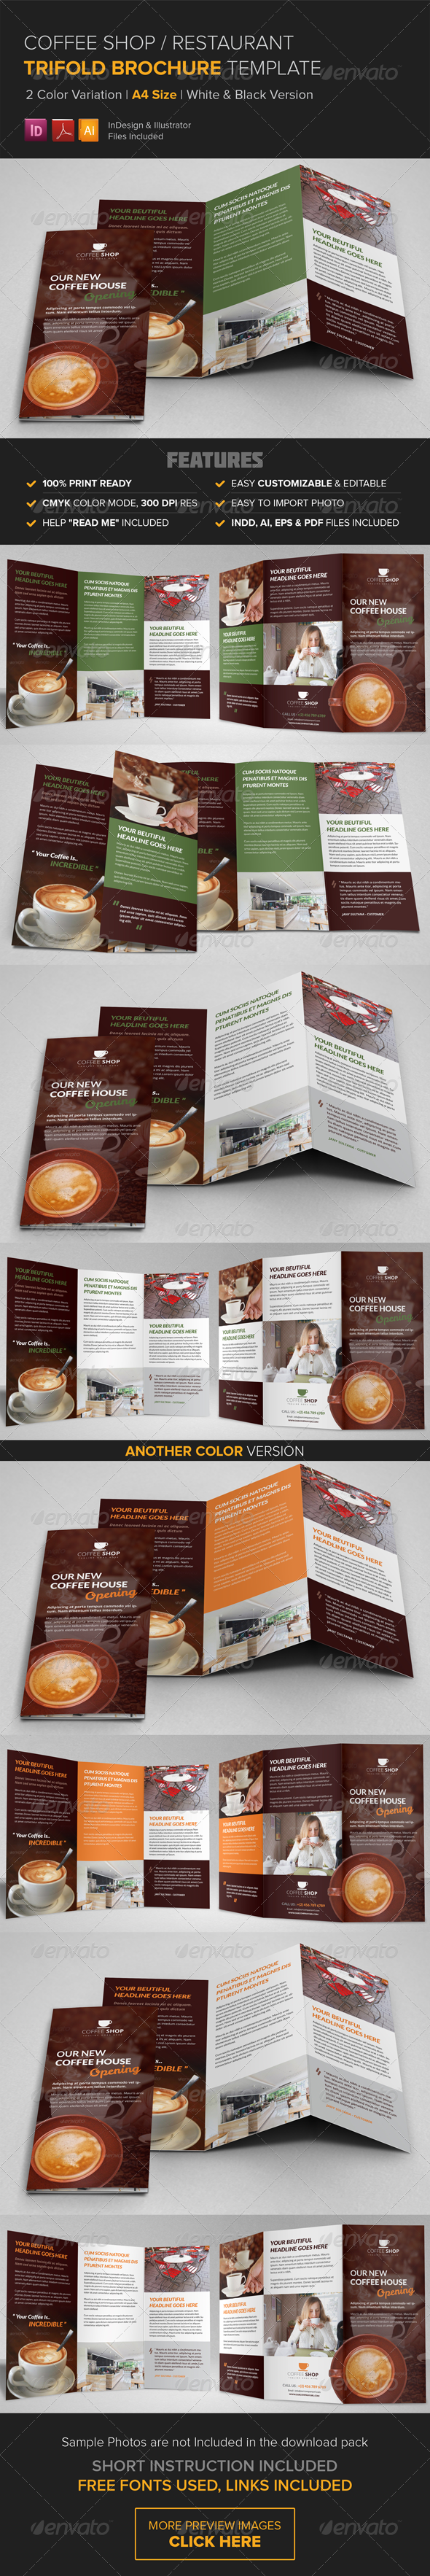 Coffee Shop Restaurant Trifold Brochure Template   Corporate Brochures